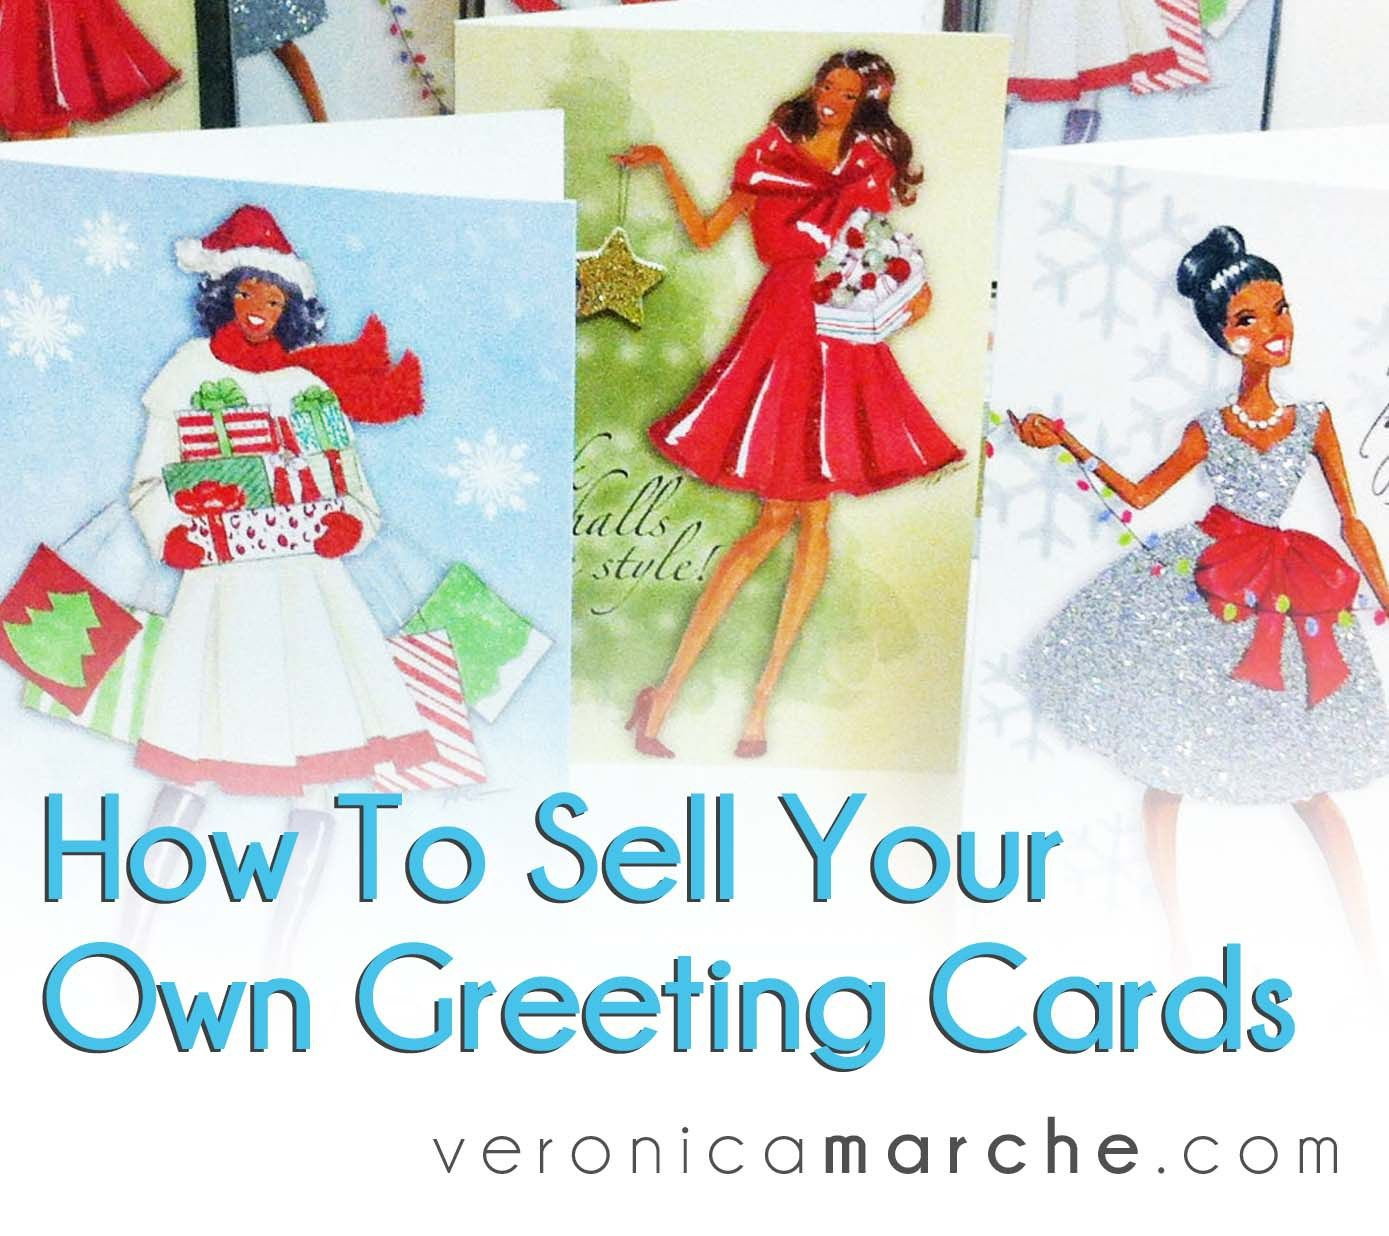 How to sell your own greeting cards by veronica marche pick a card how to sell your own greeting cards by veronica marche m4hsunfo